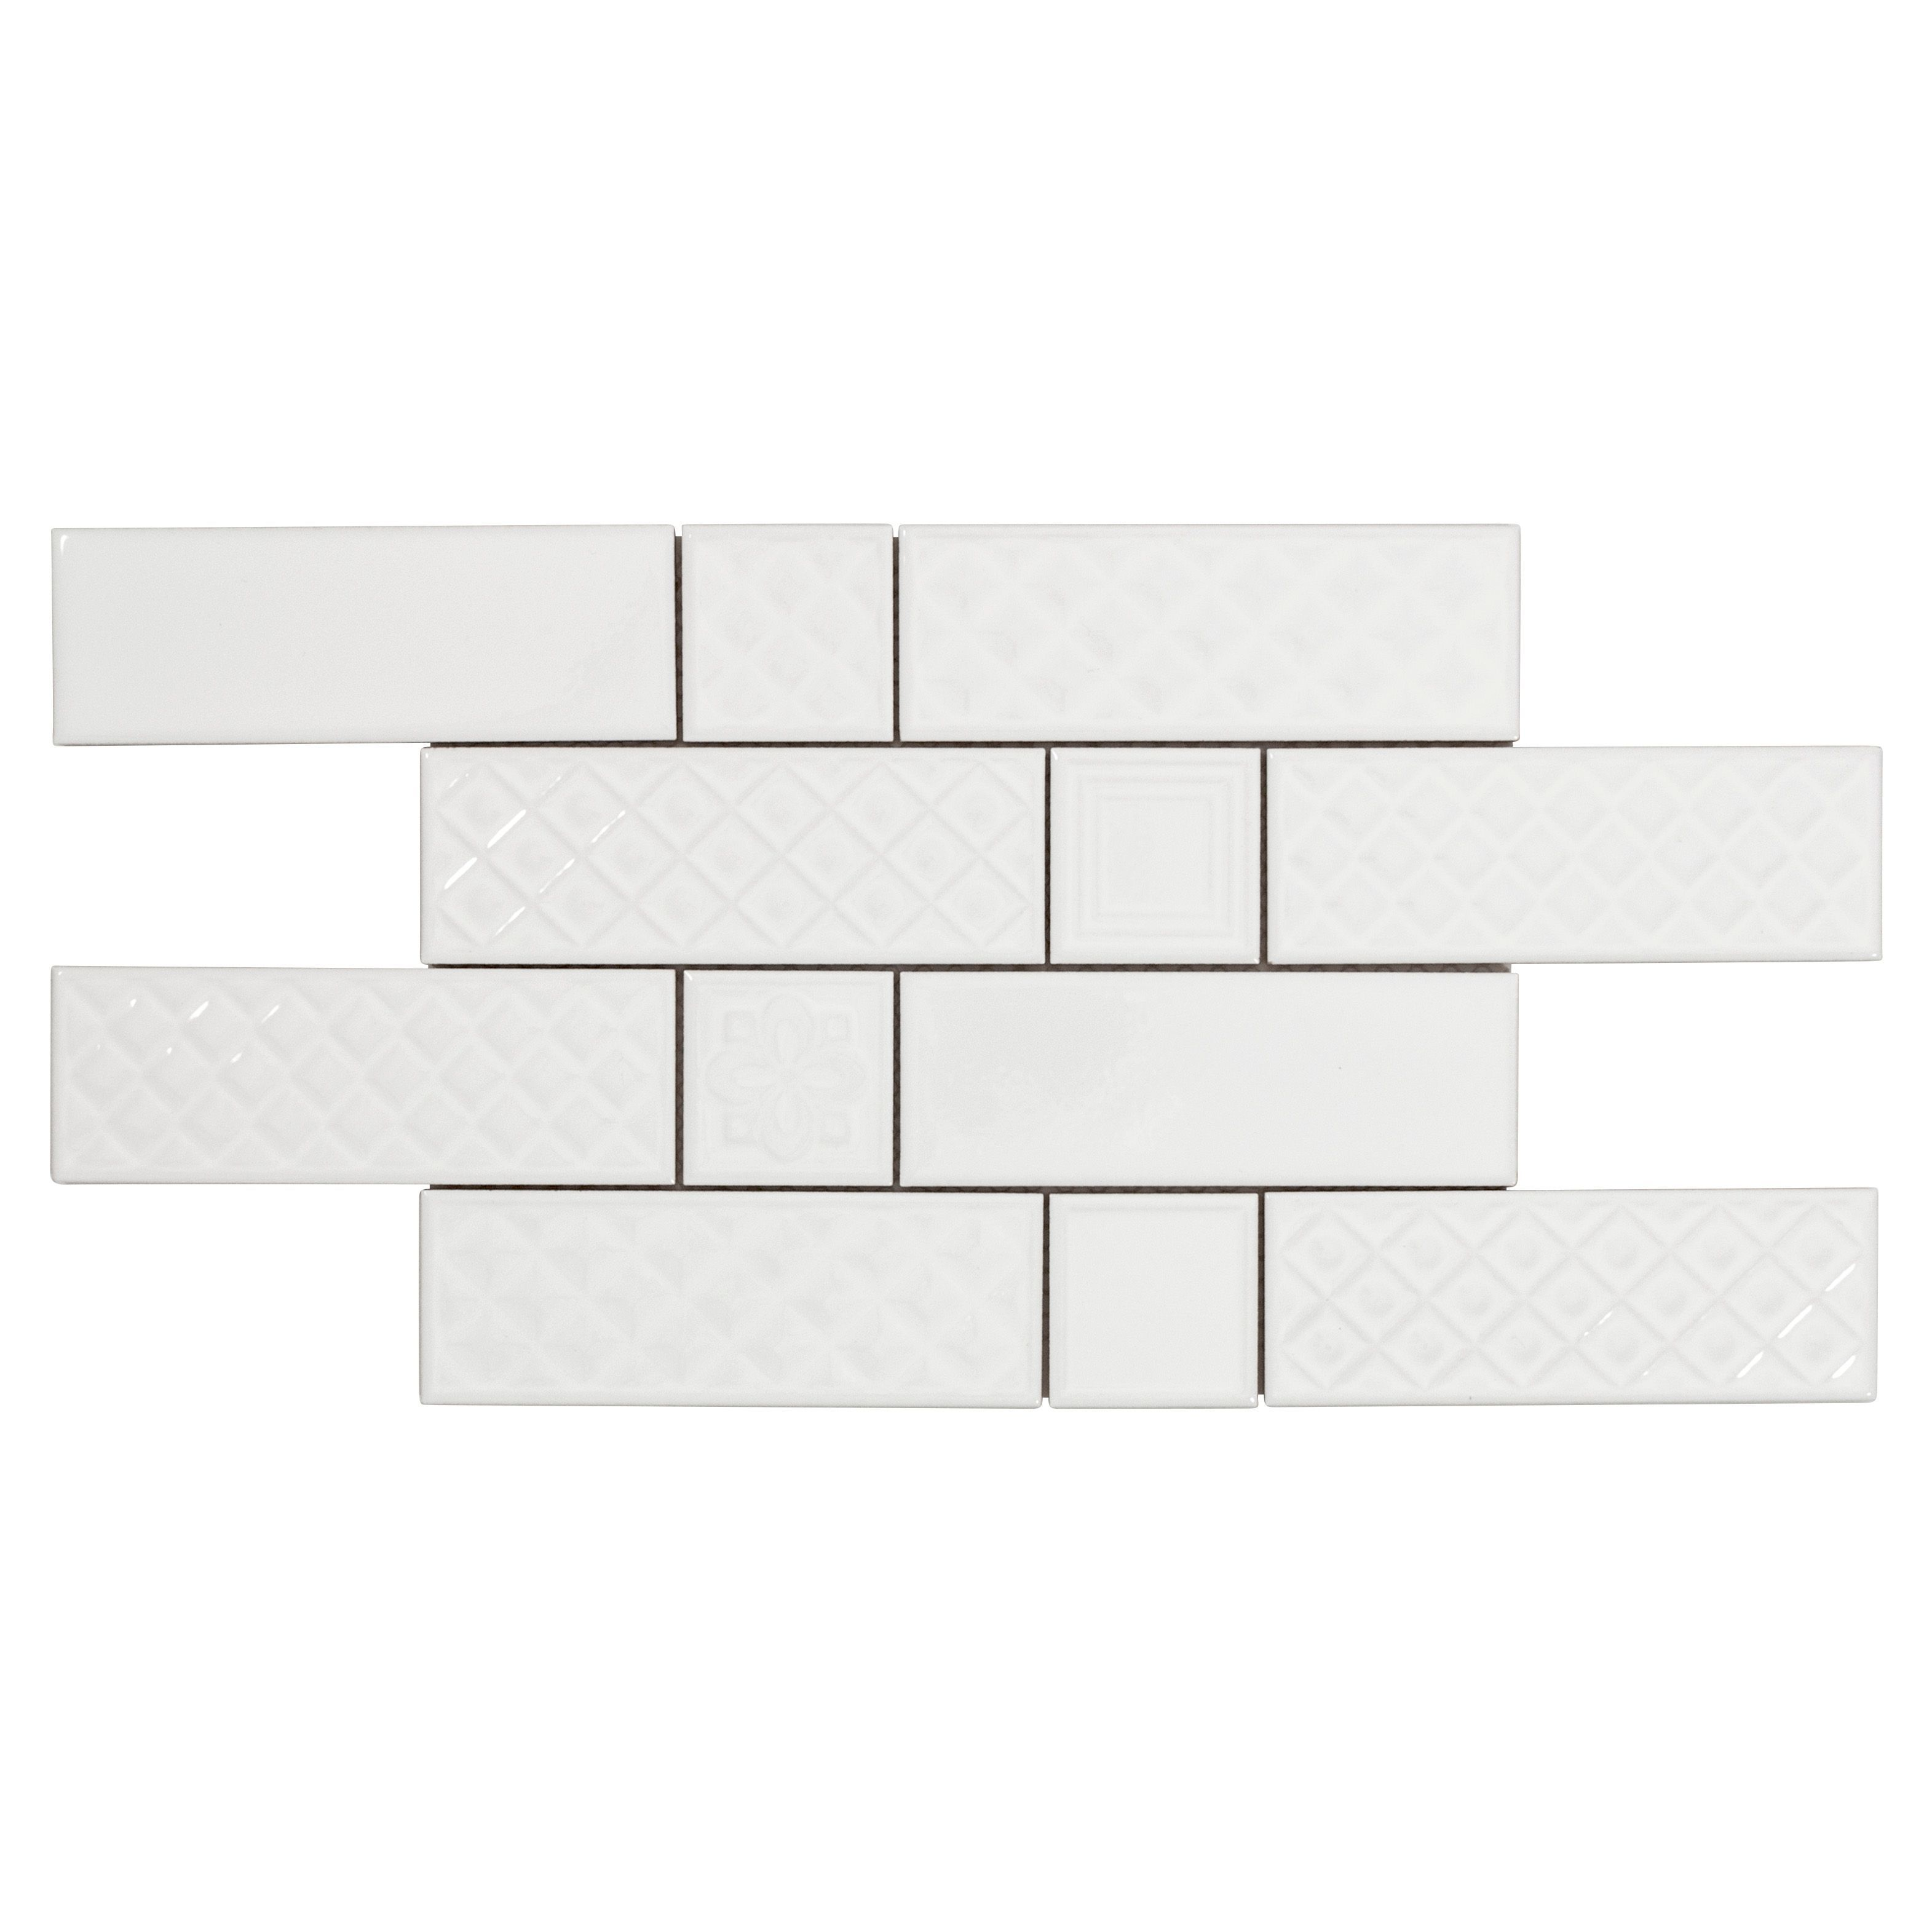 Boutique Ceramic Boutique Crafted White 3x12 3 In X 12 In Ceramic Wall Tile Common 3 In X 12 In Actual 2 99 In X 1 In 2020 Mosaic Wall Tiles Mosaic Wall Wall Tiles